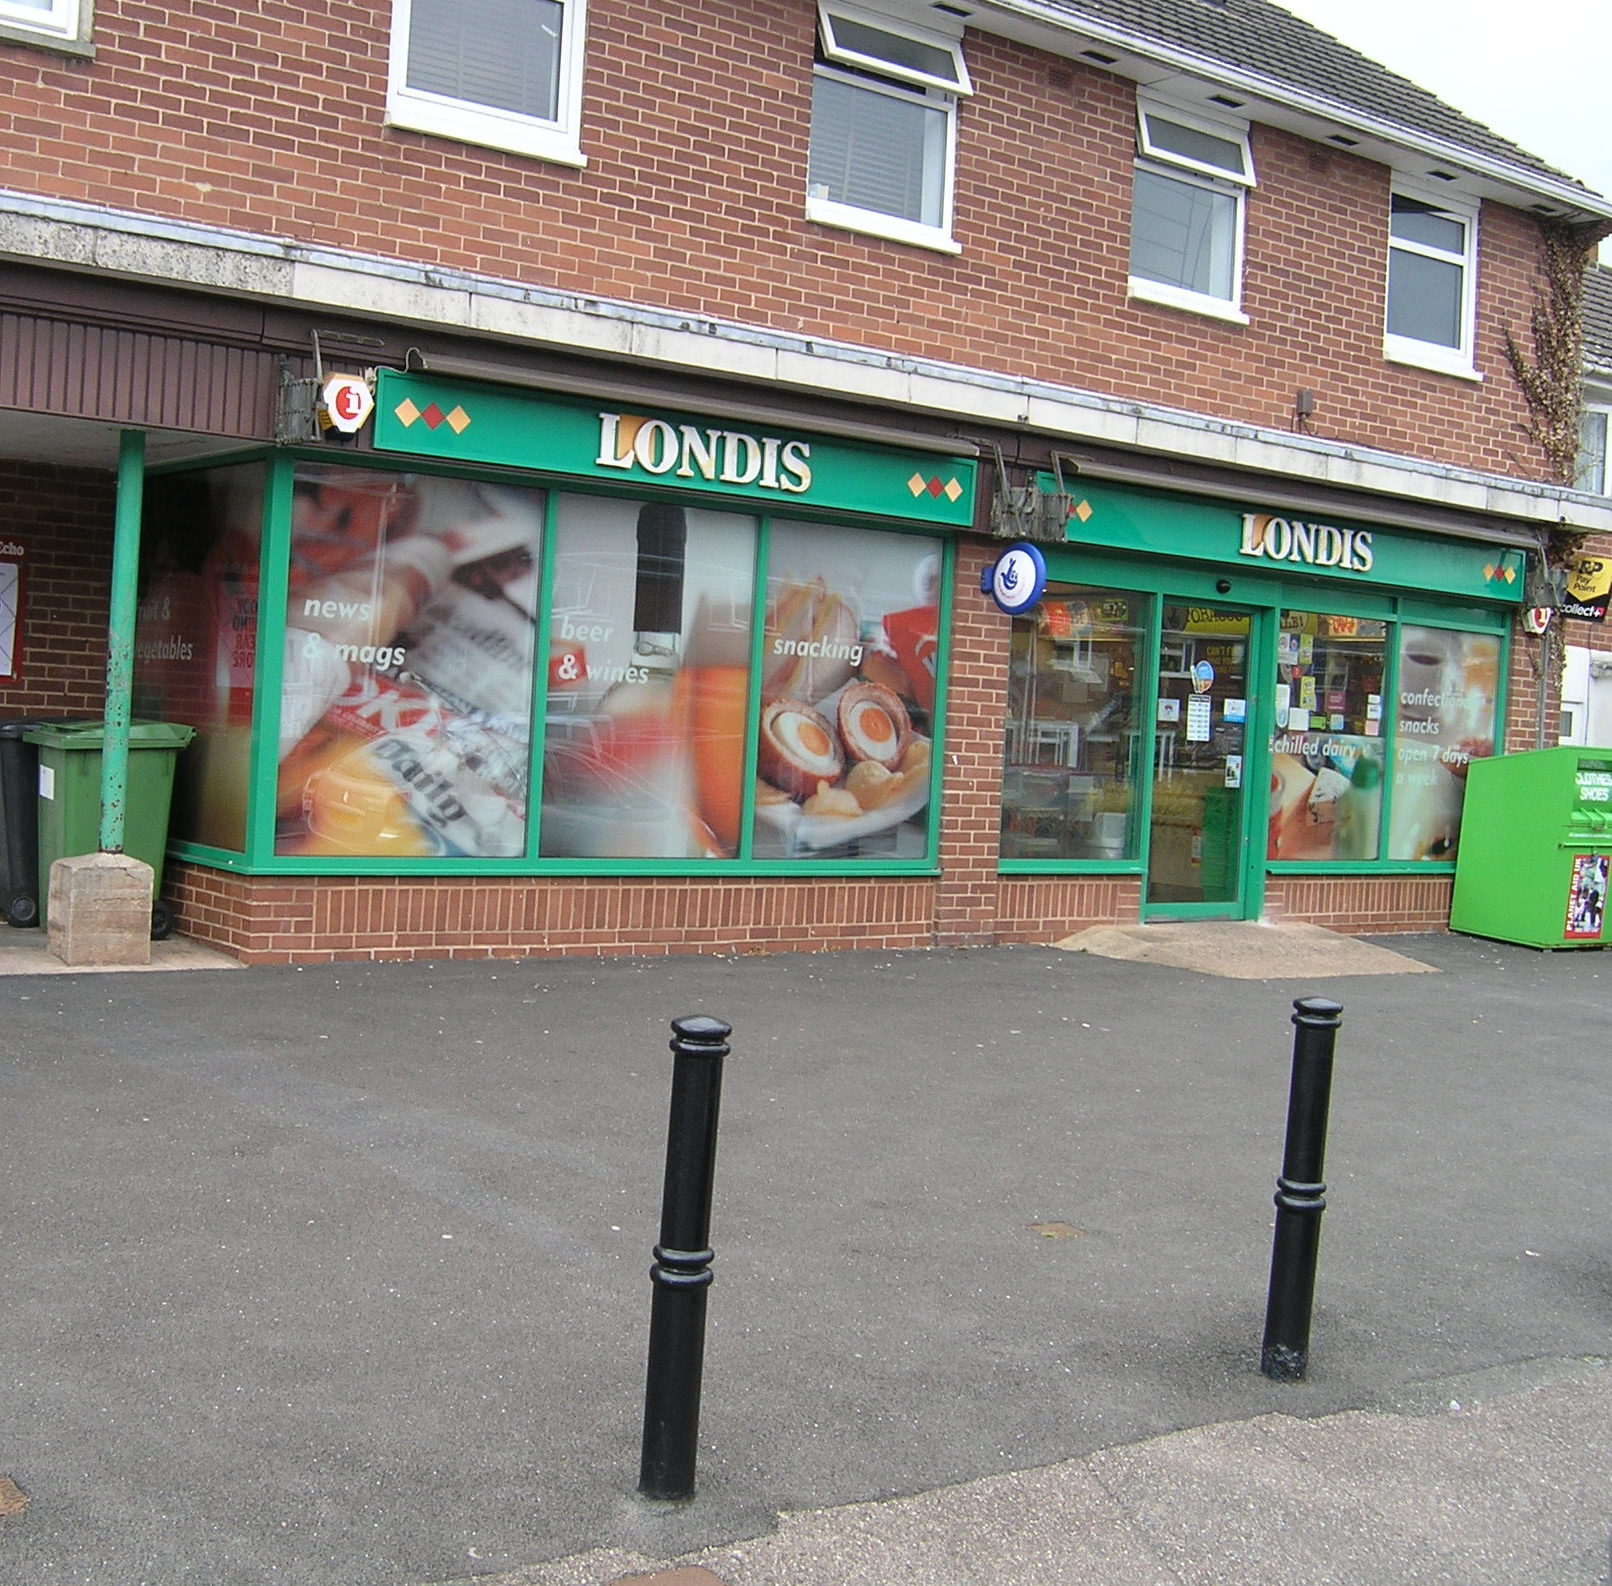 Londis Convenience Store, Exeter, Devon